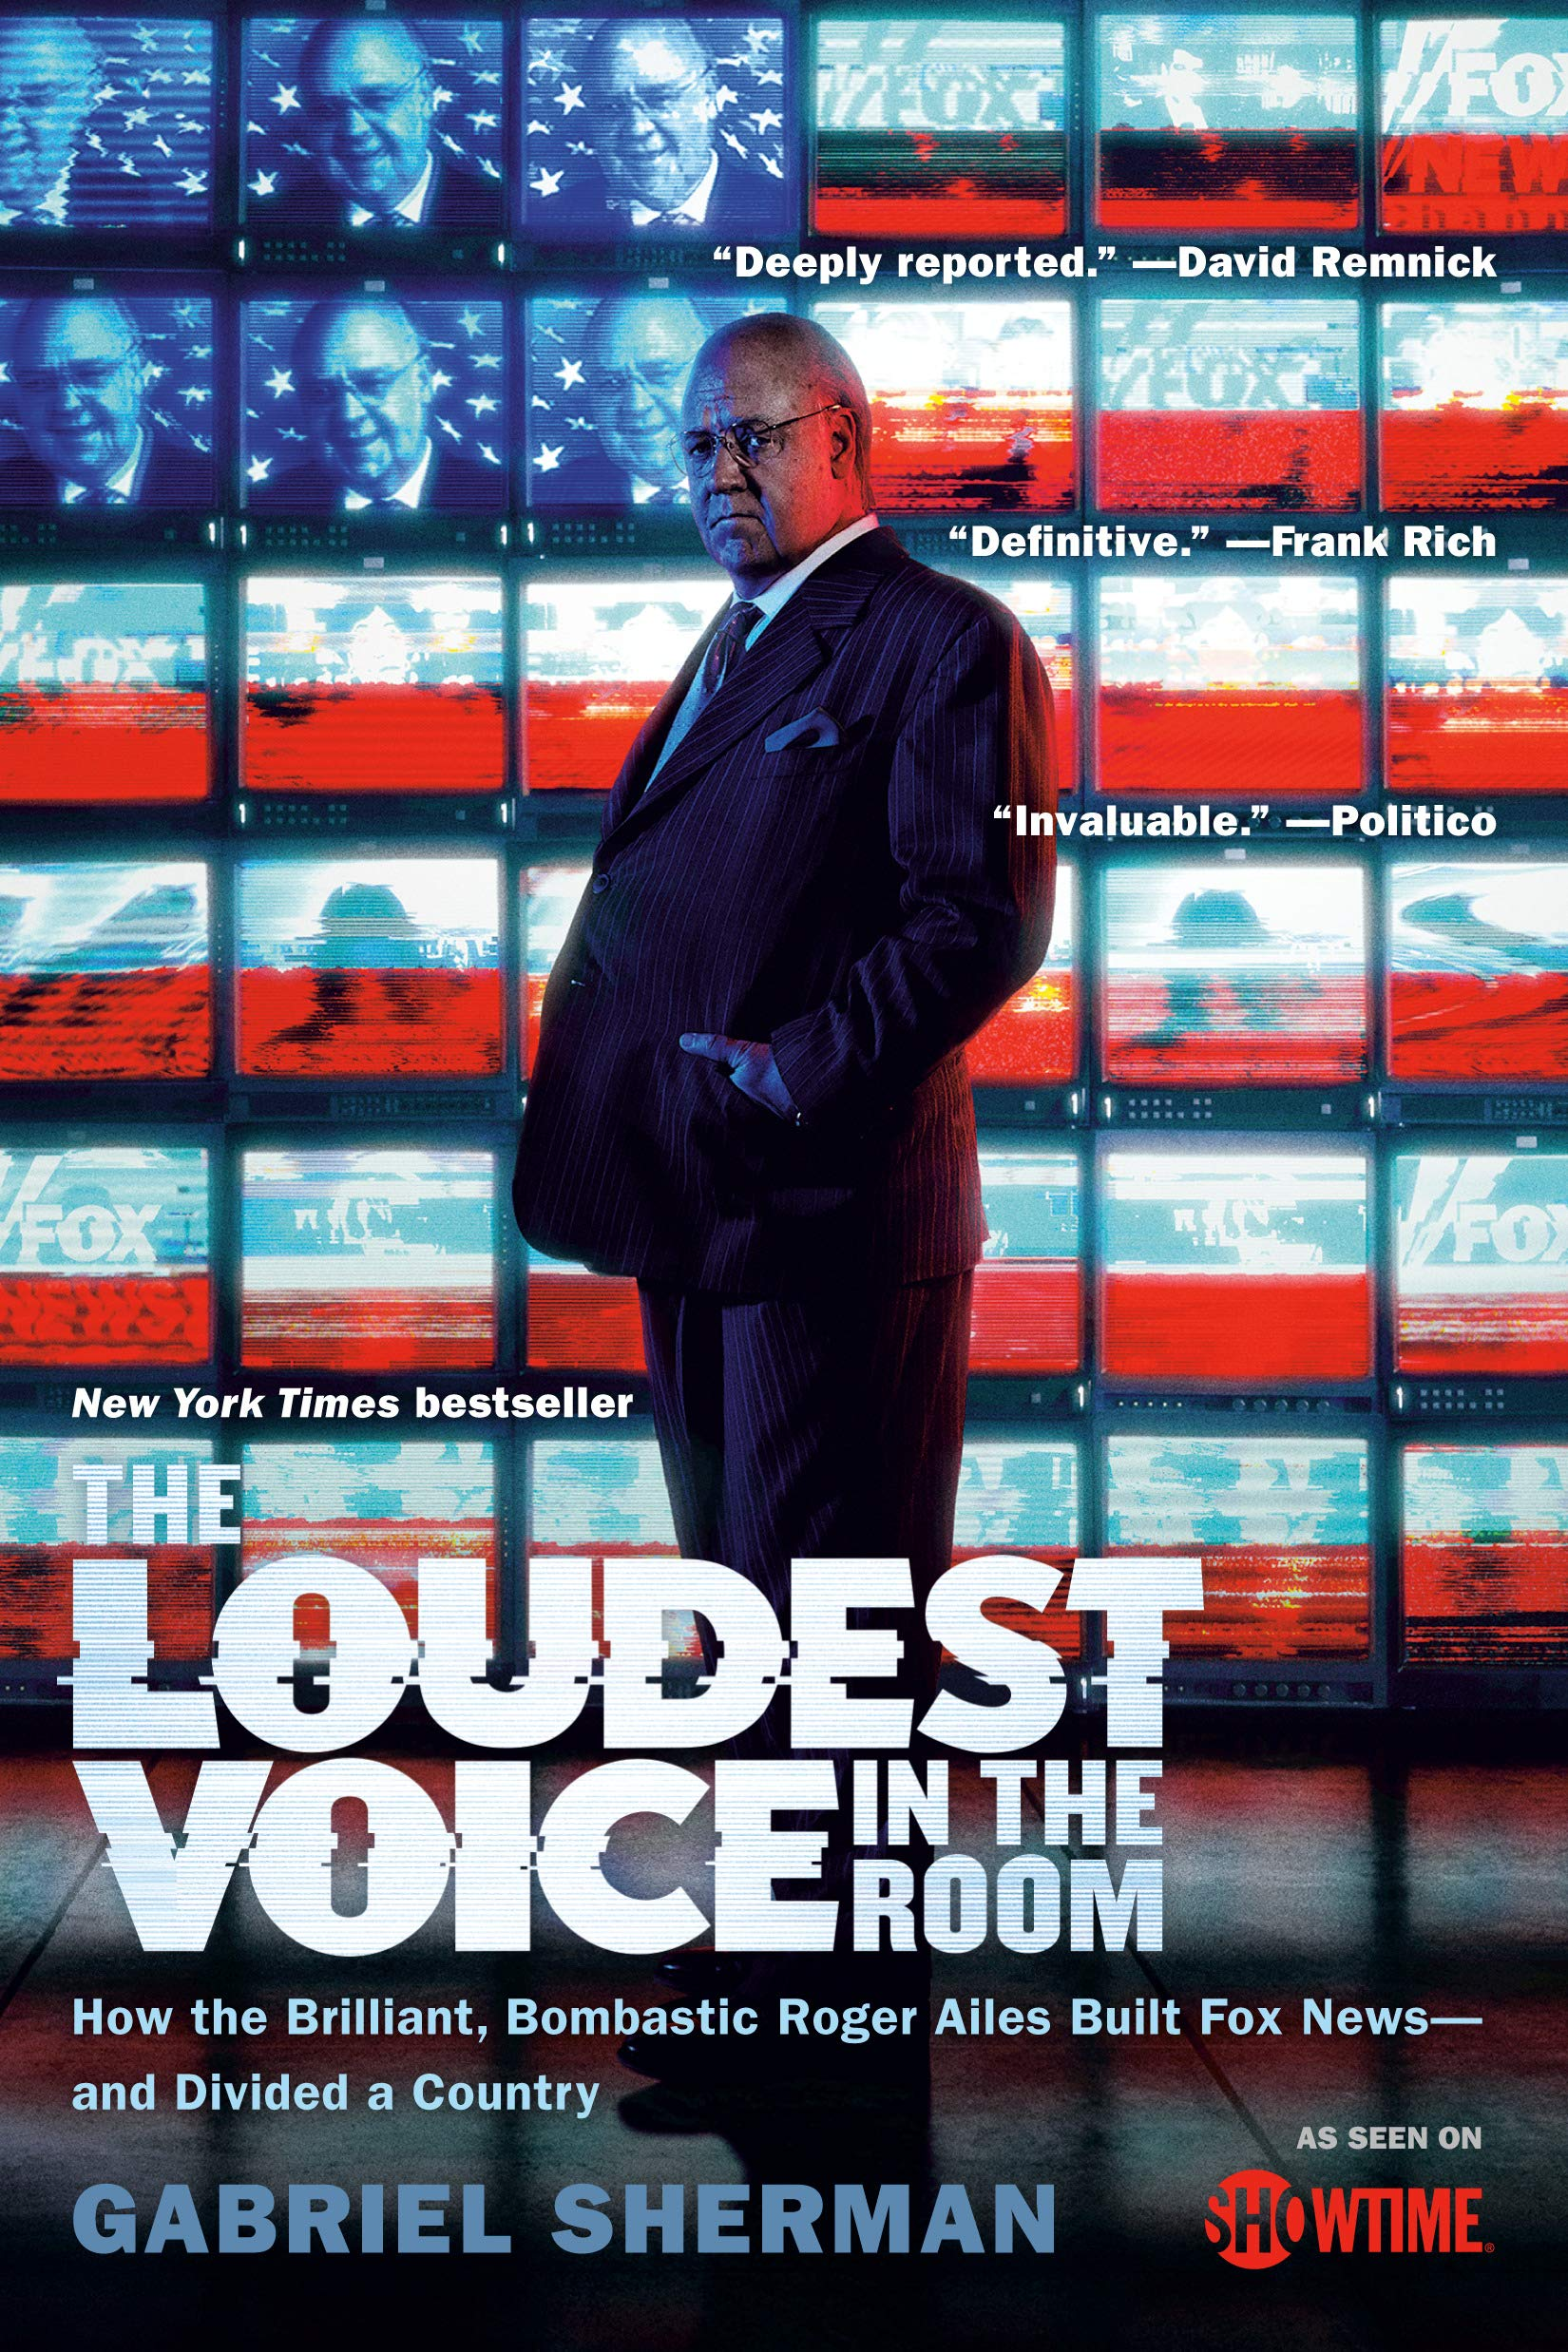 The Loudest Voice in the Room: How the Brilliant, Bombastic Roger Ailes Built Fox News  and Divided a Country